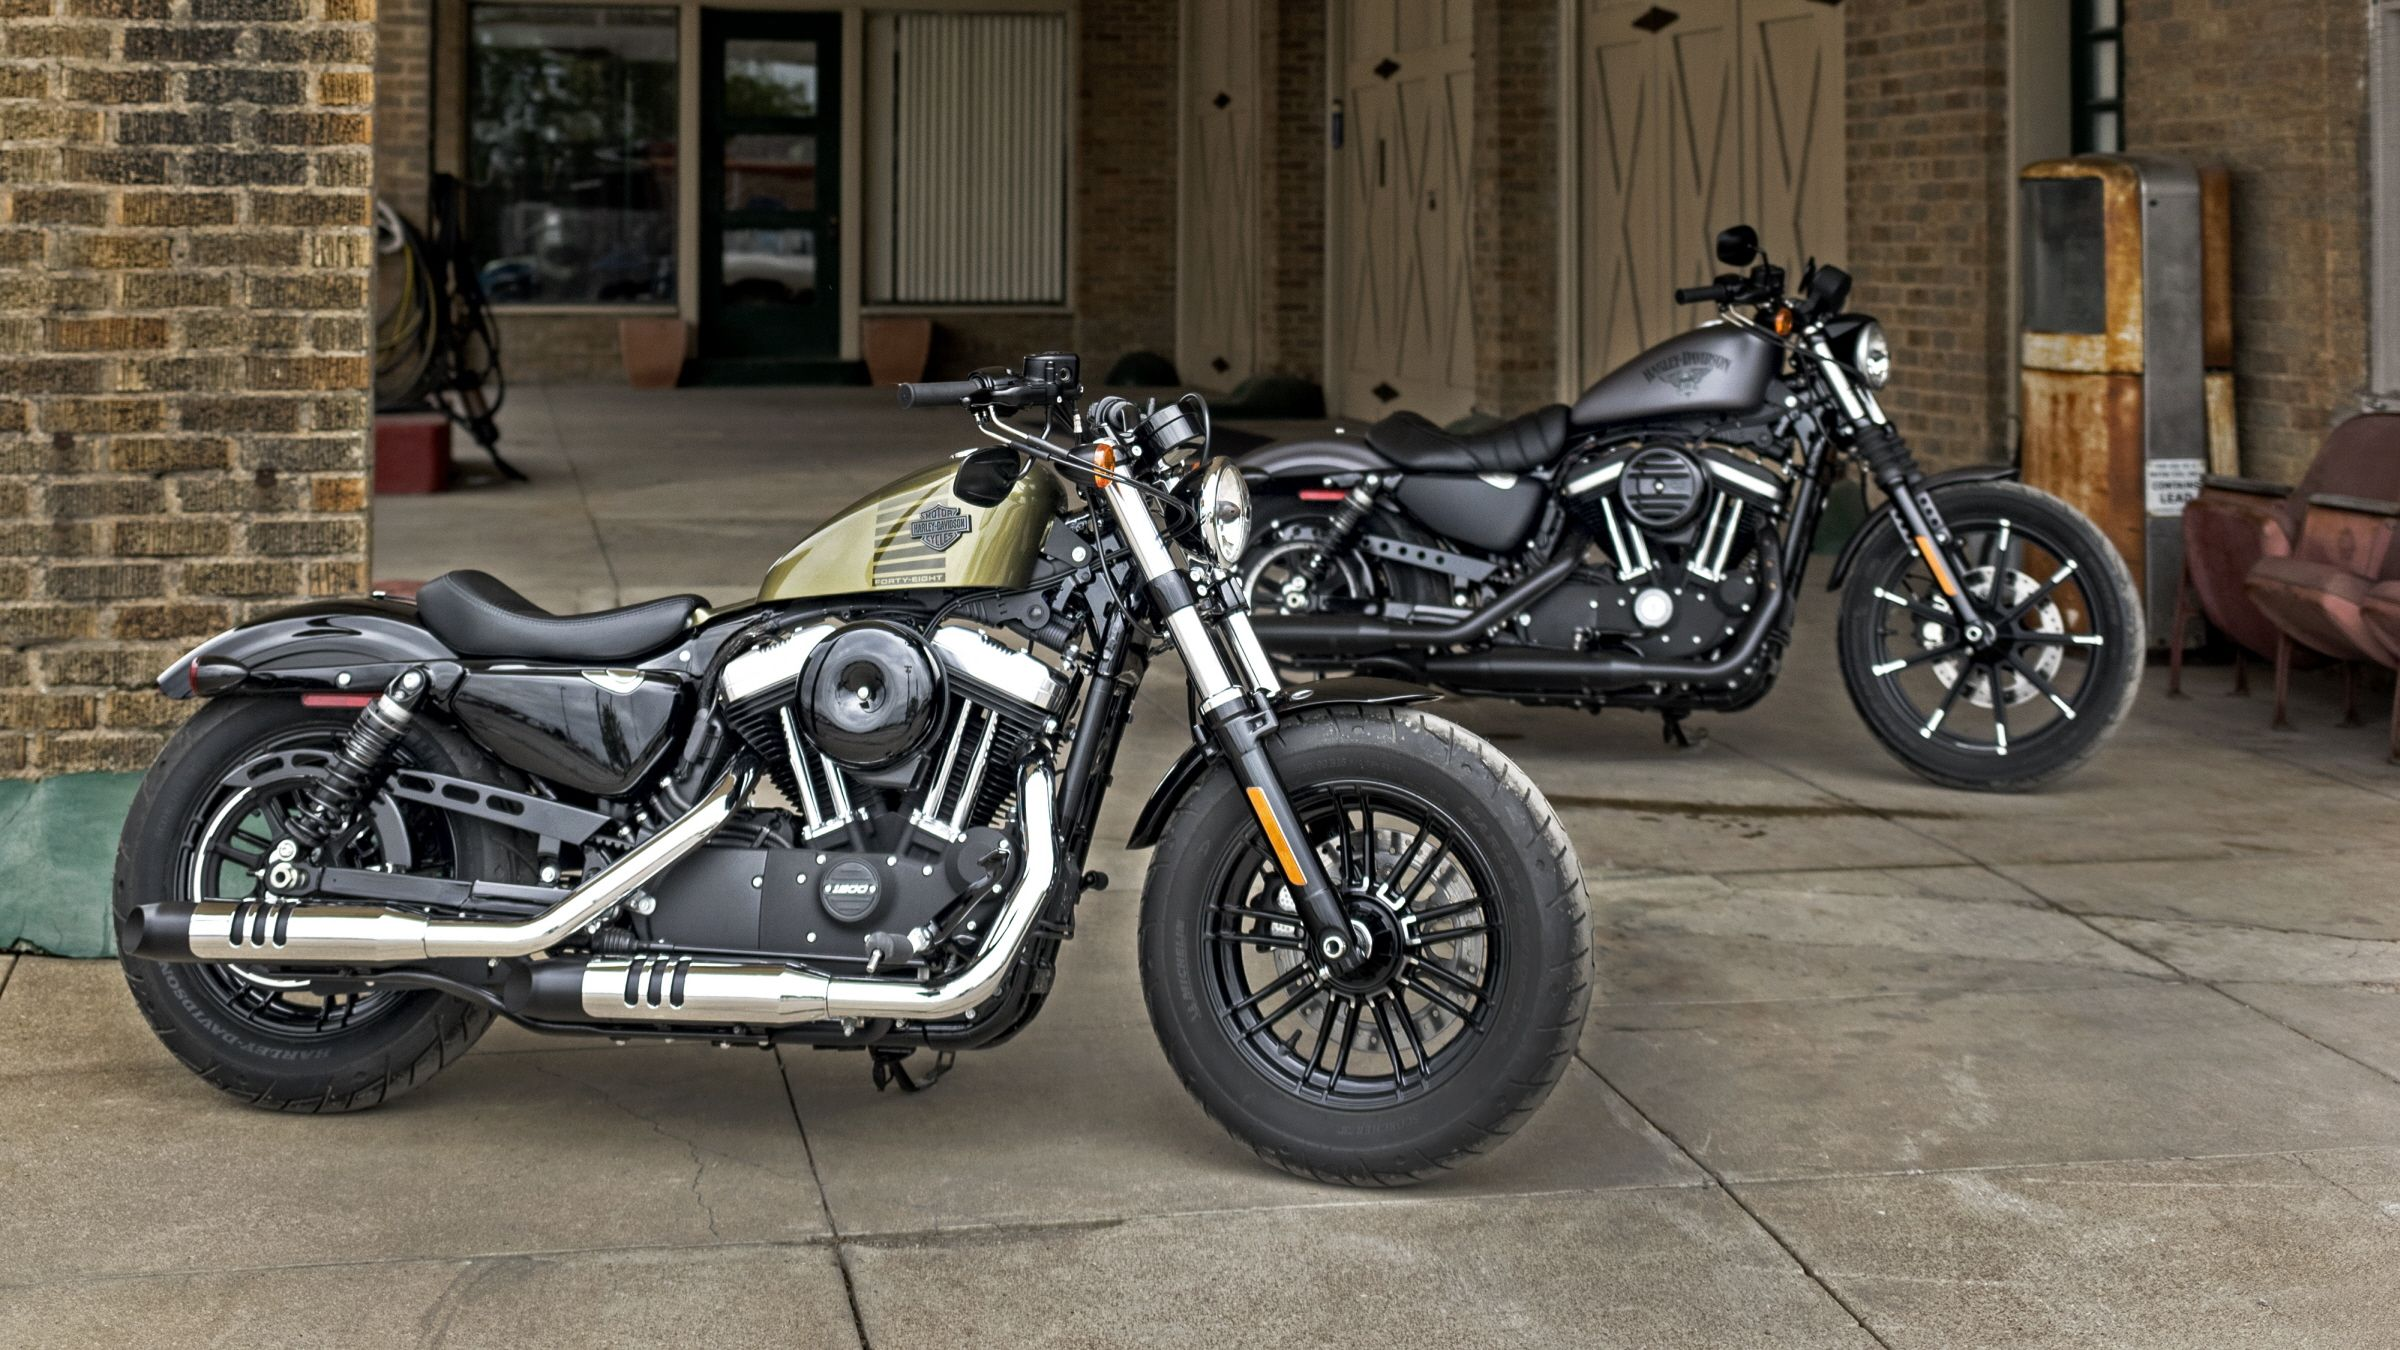 Harley davidson 2016 models announced via worldwide live stream event